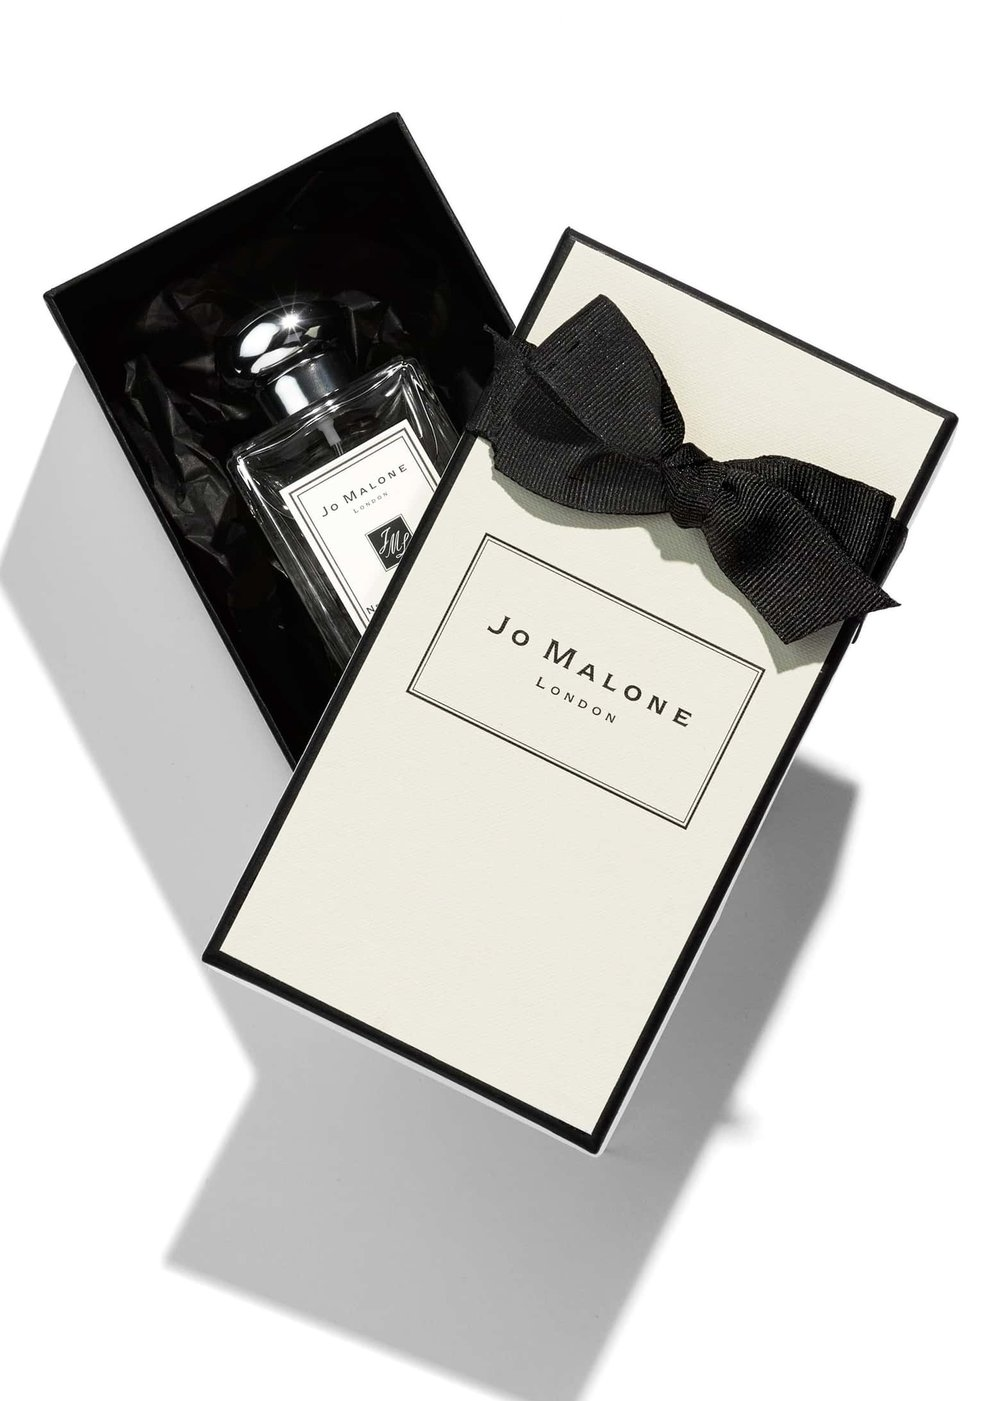 Photo from Nordstrom by Jo Malone